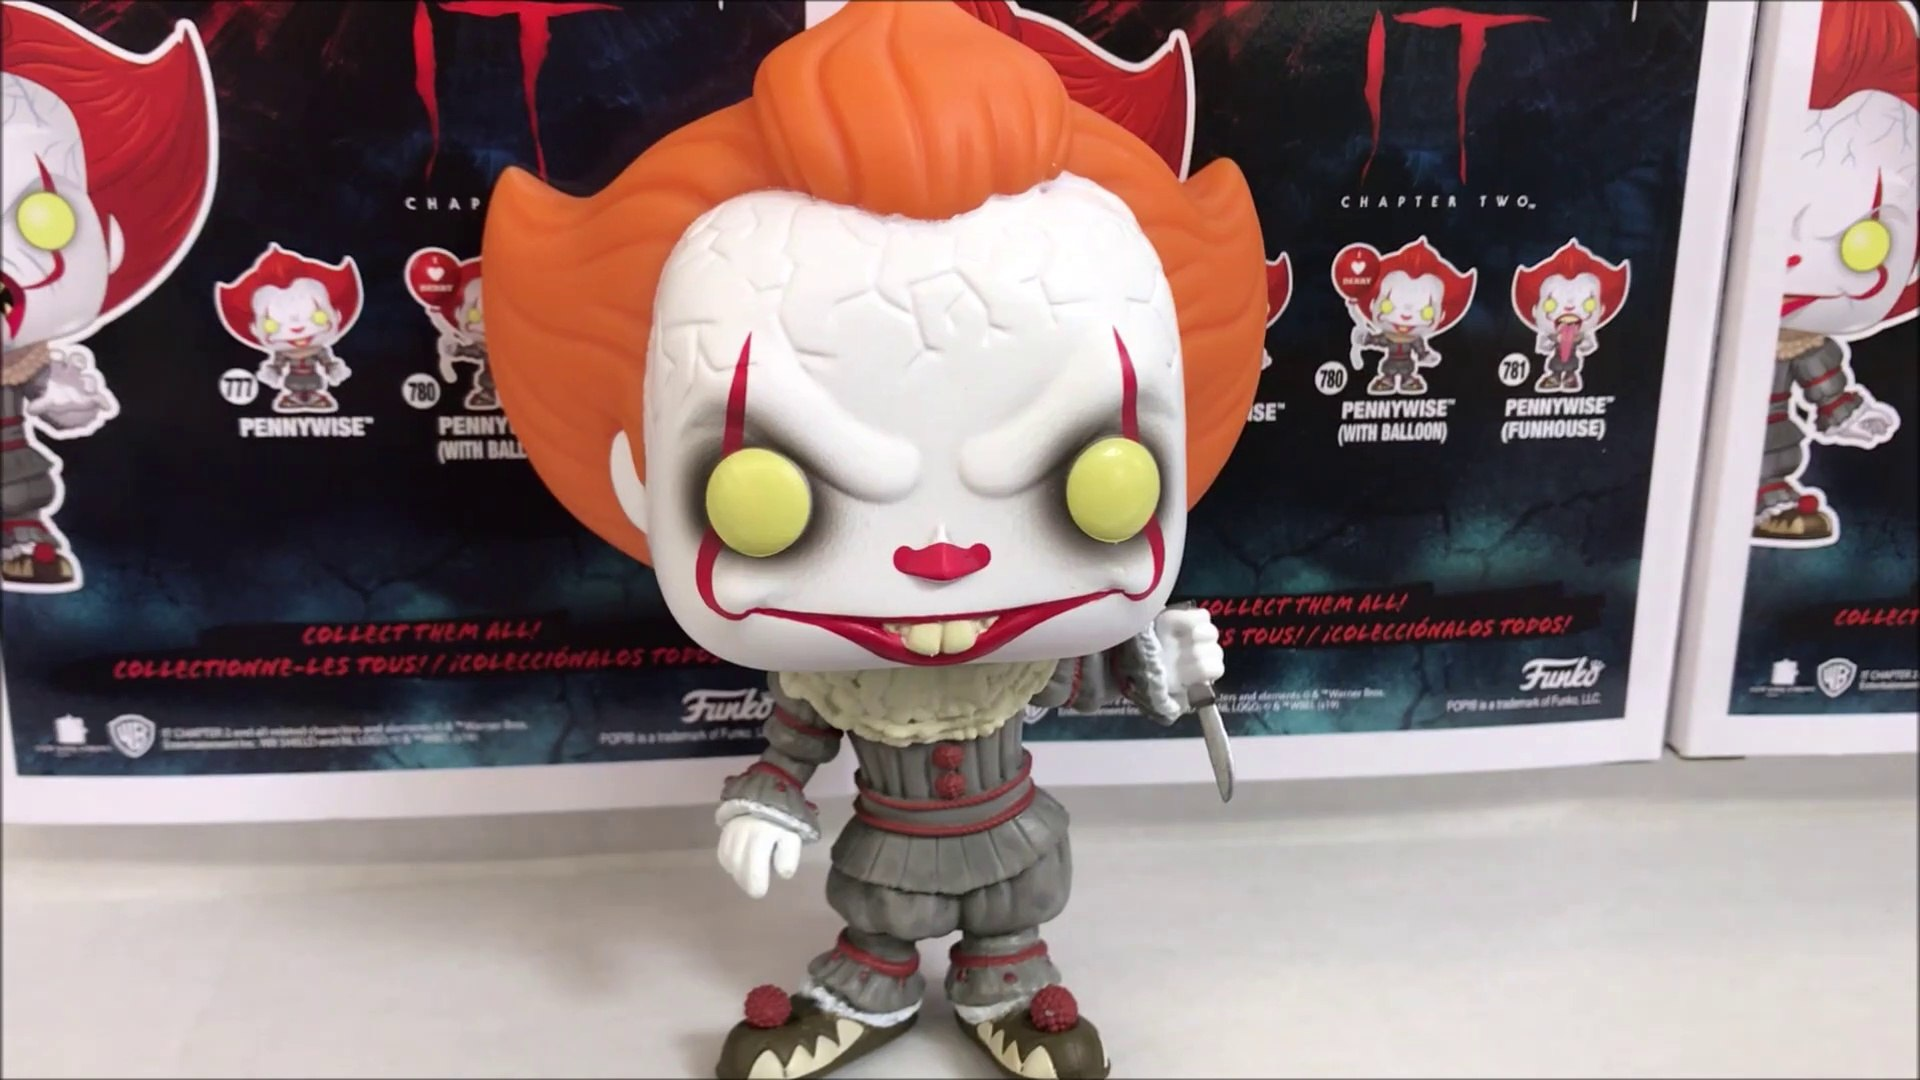 IT MOVIE CHAPTER 2 PENNYWISE WALMART 2019 FUNKO POP EXCLUSIVE DETAILED LOOK + LONG TONGUE & OTHE